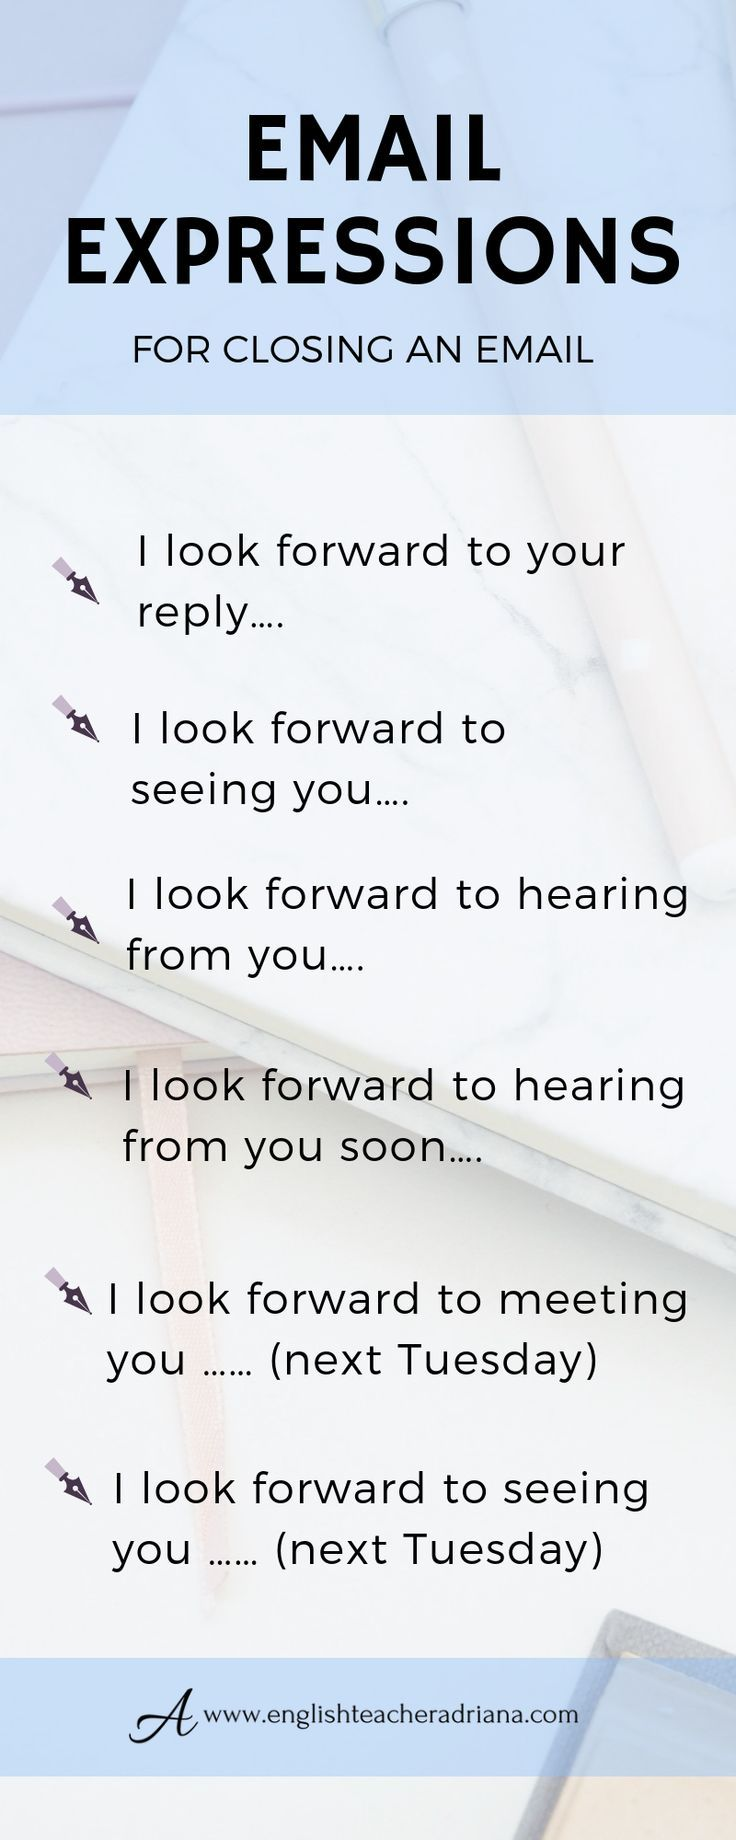 Looking forward to meeting you email